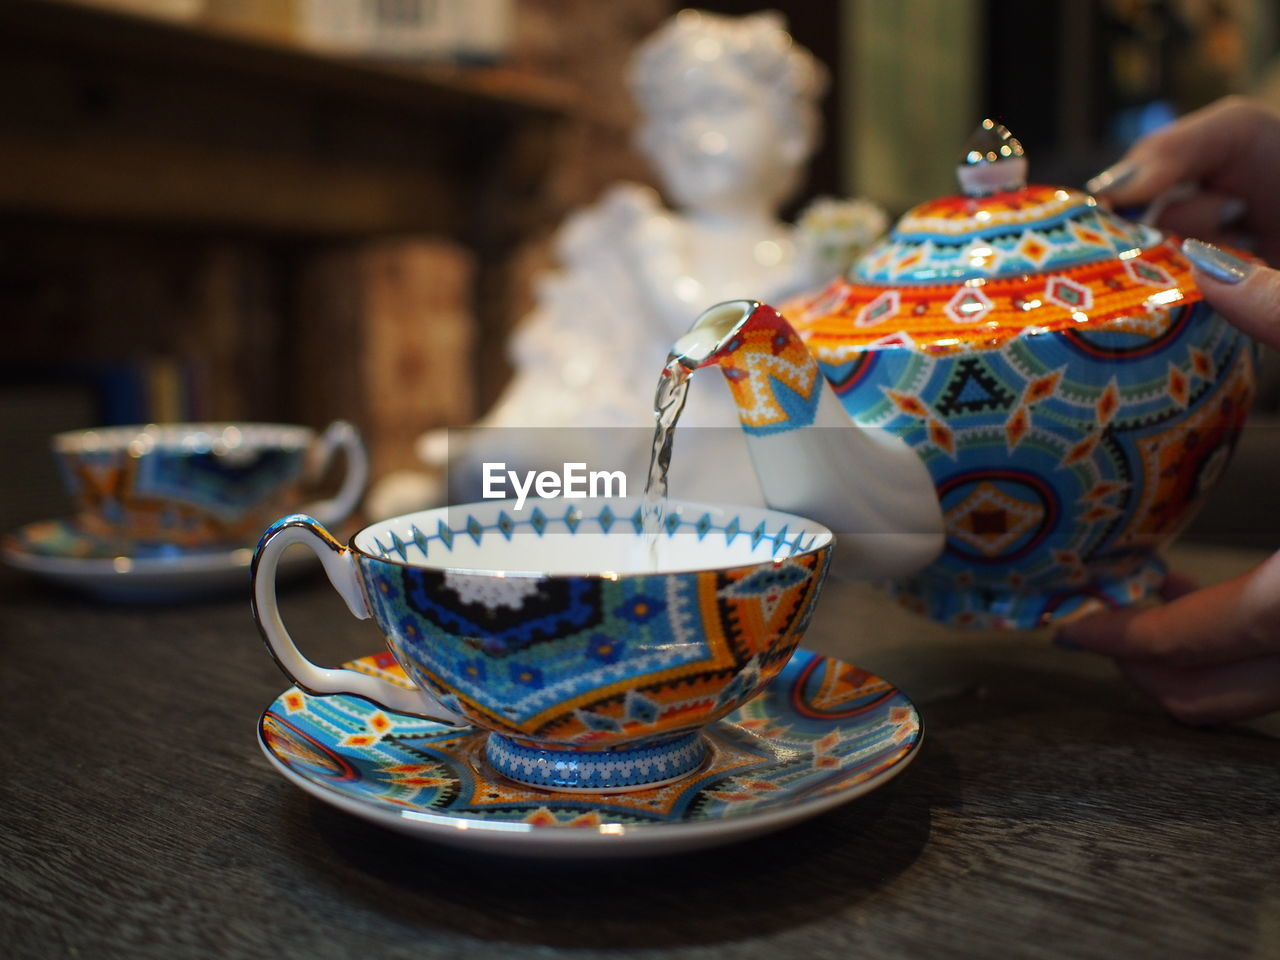 table, food and drink, drink, indoors, cup, real people, one person, focus on foreground, pattern, mug, tea, hot drink, refreshment, kitchen utensil, crockery, hand, human hand, close-up, tea cup, saucer, teapot, floral pattern